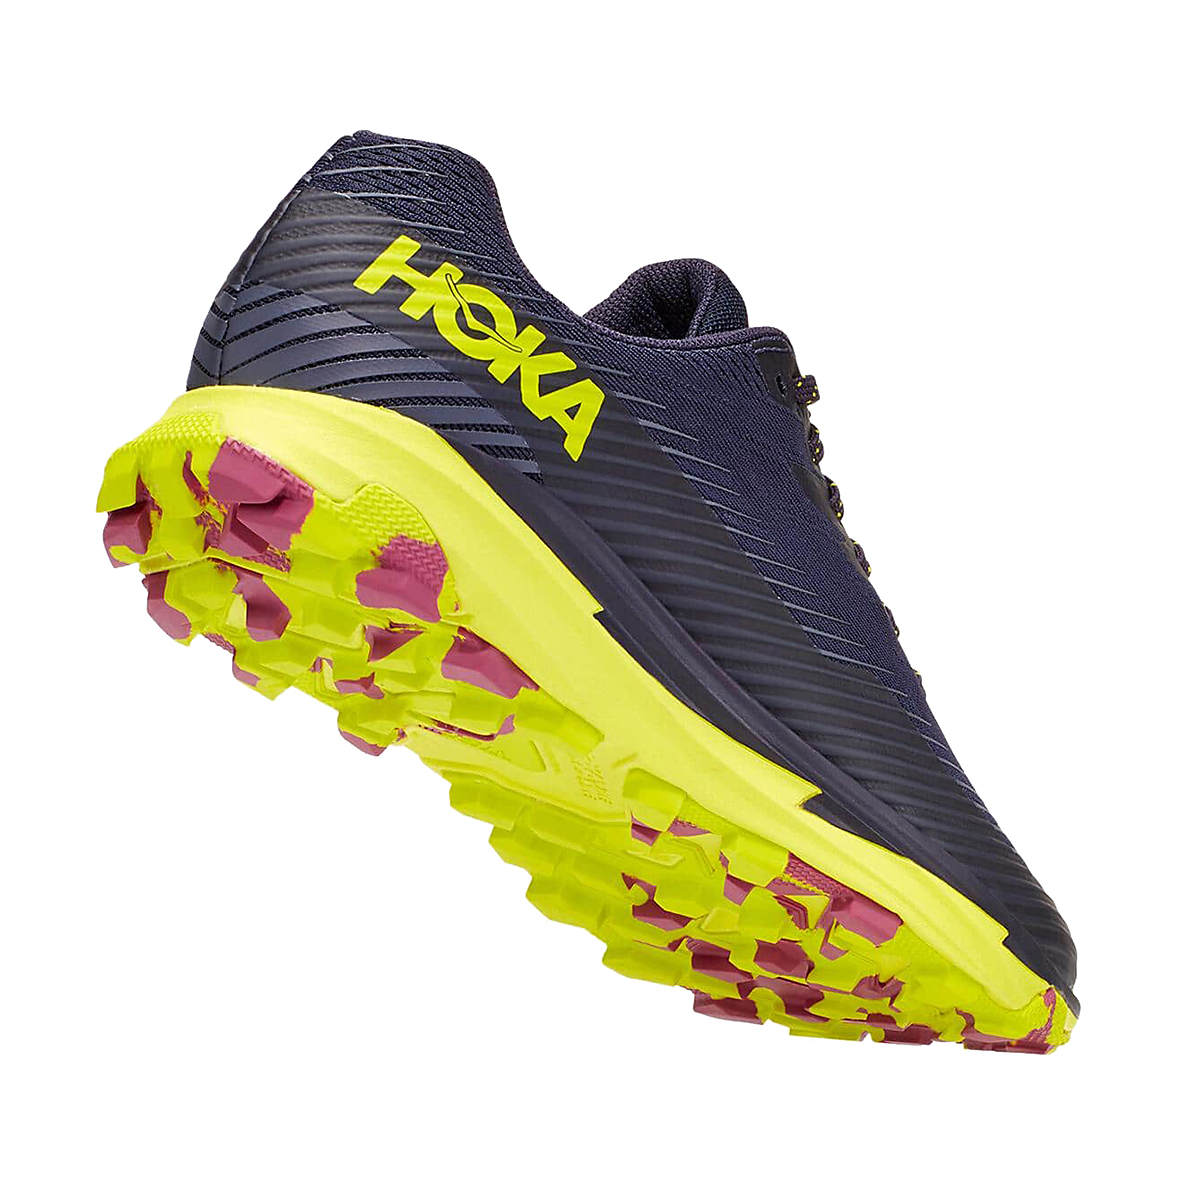 Women's Hoka One One Torrent 2 Trail Running Shoe - Color: Deep Well/Eve - Size: 5 - Width: Regular, Deep Well/Eve, large, image 4